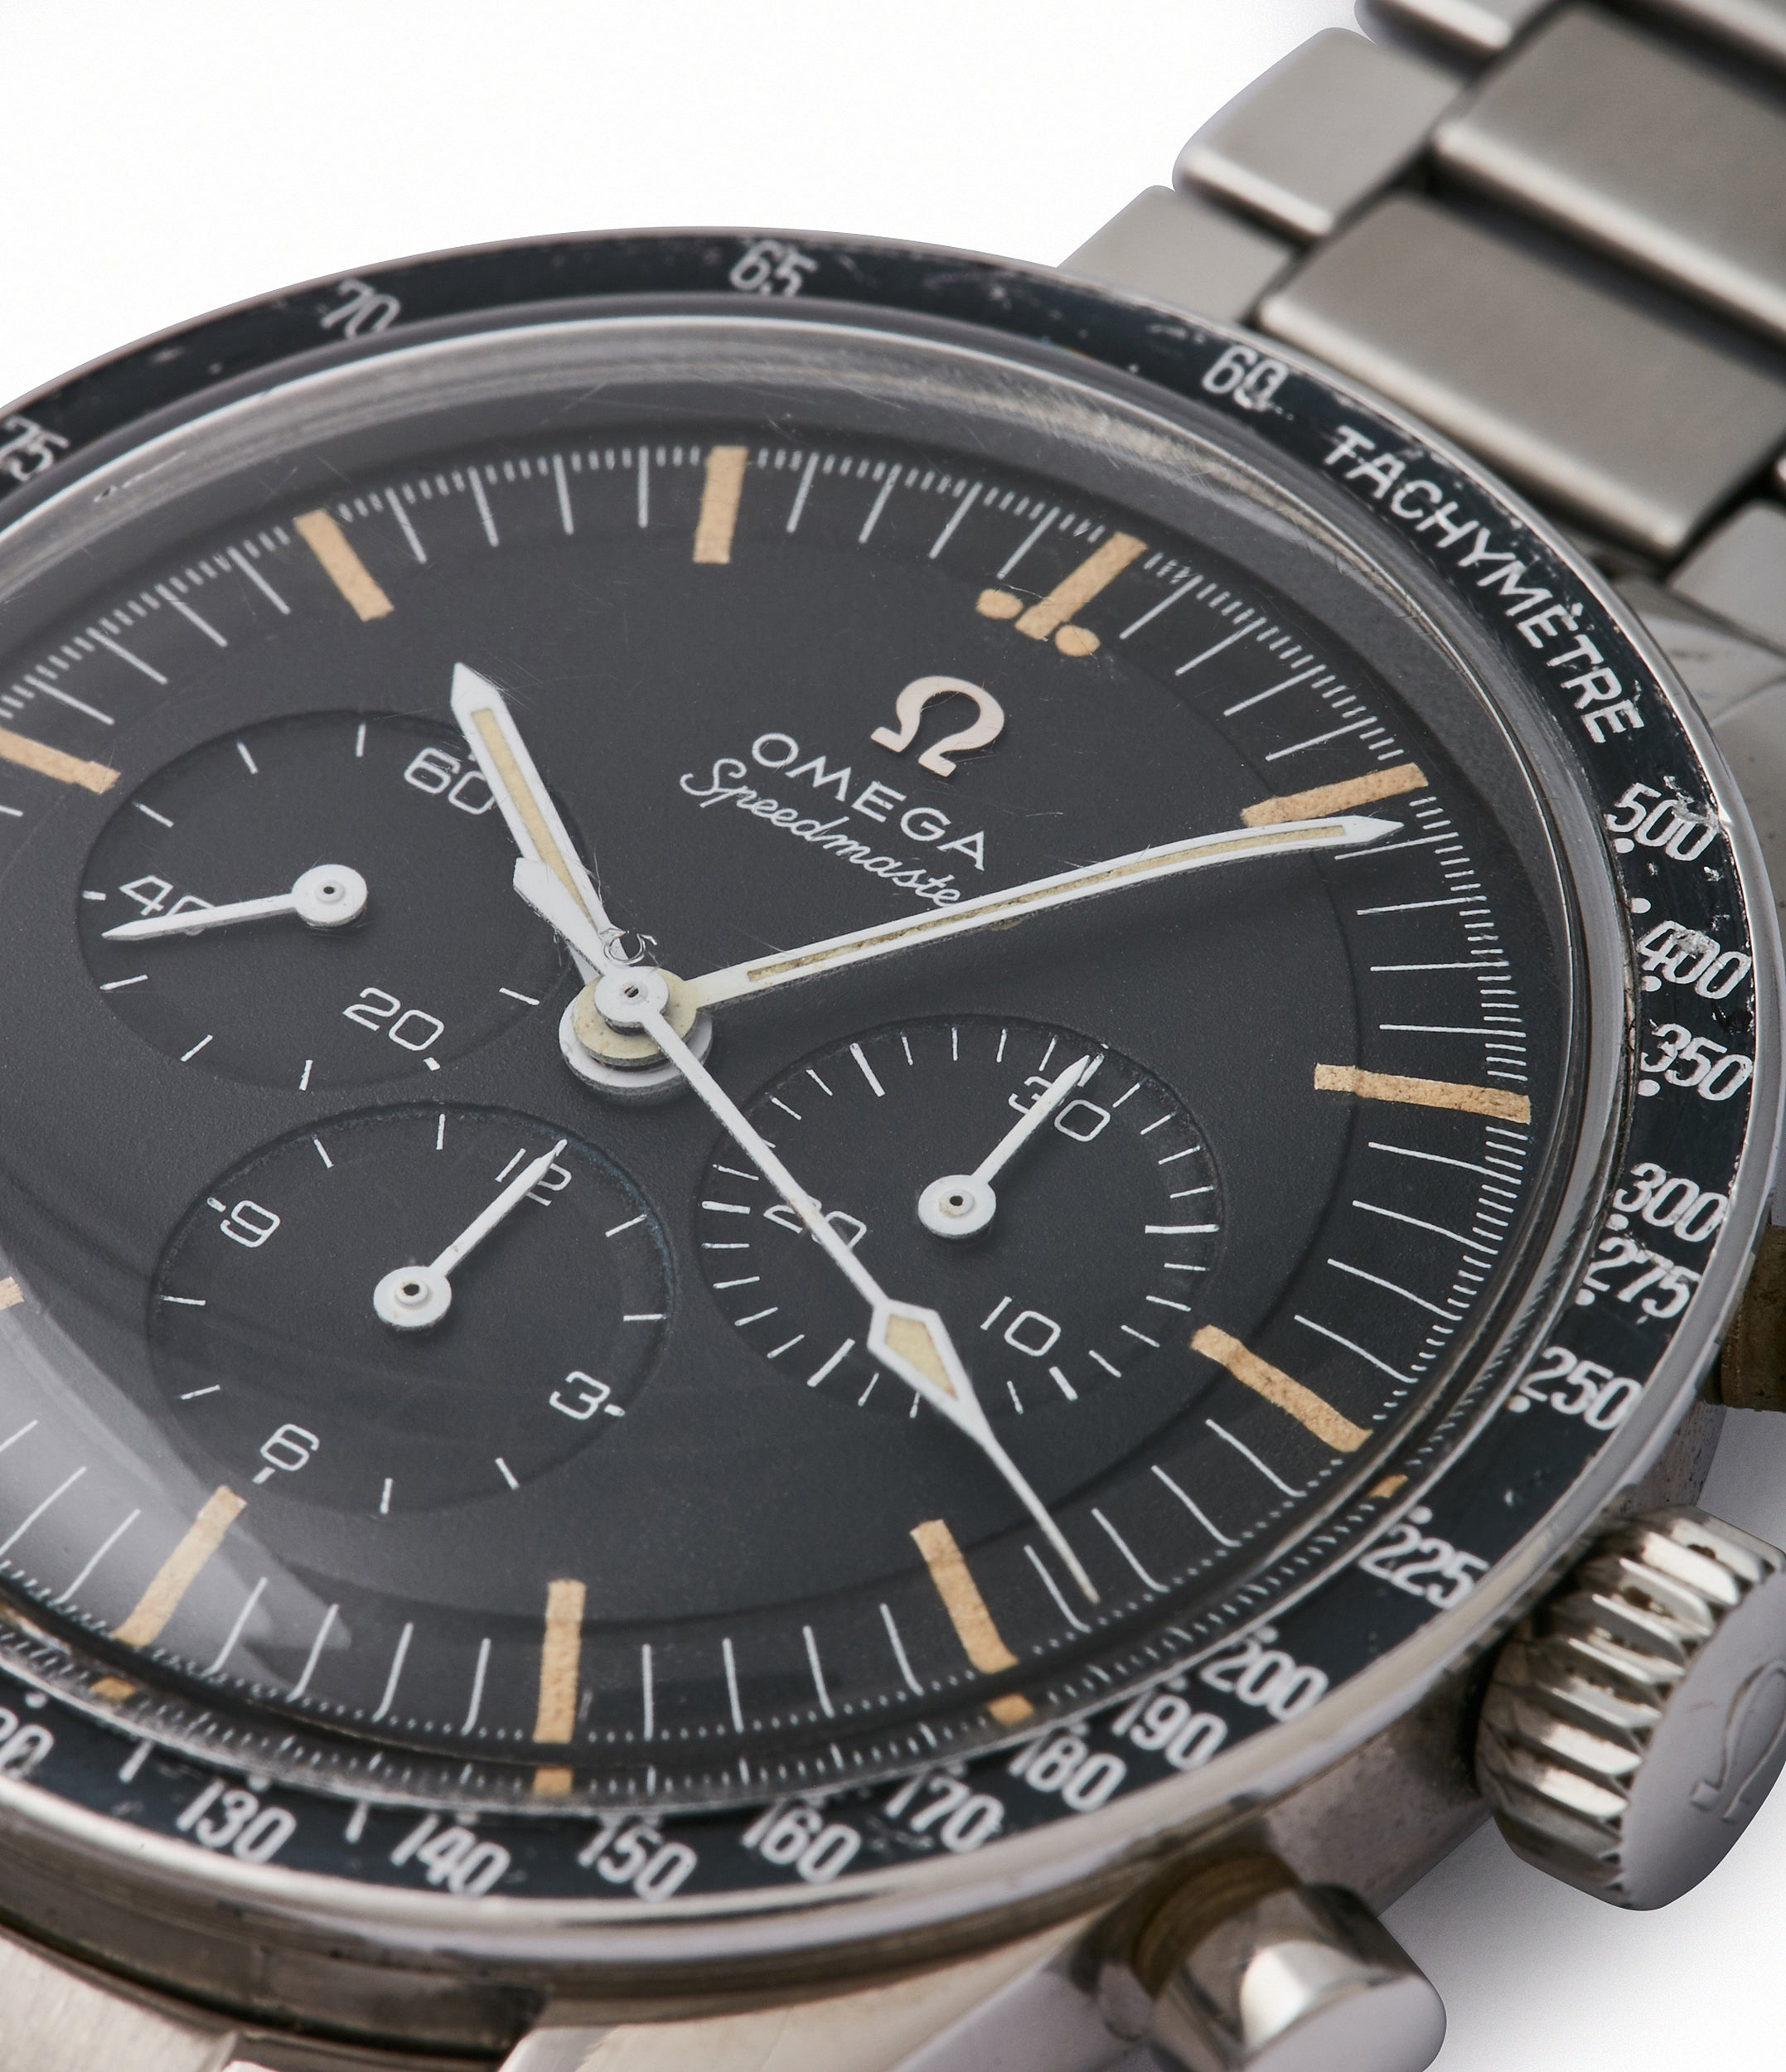 tachymeter bezel chronograph Speedmaster pre-professional Ed White Omega 105.003-65 steel chronograph sports watch online at A Collected Man London